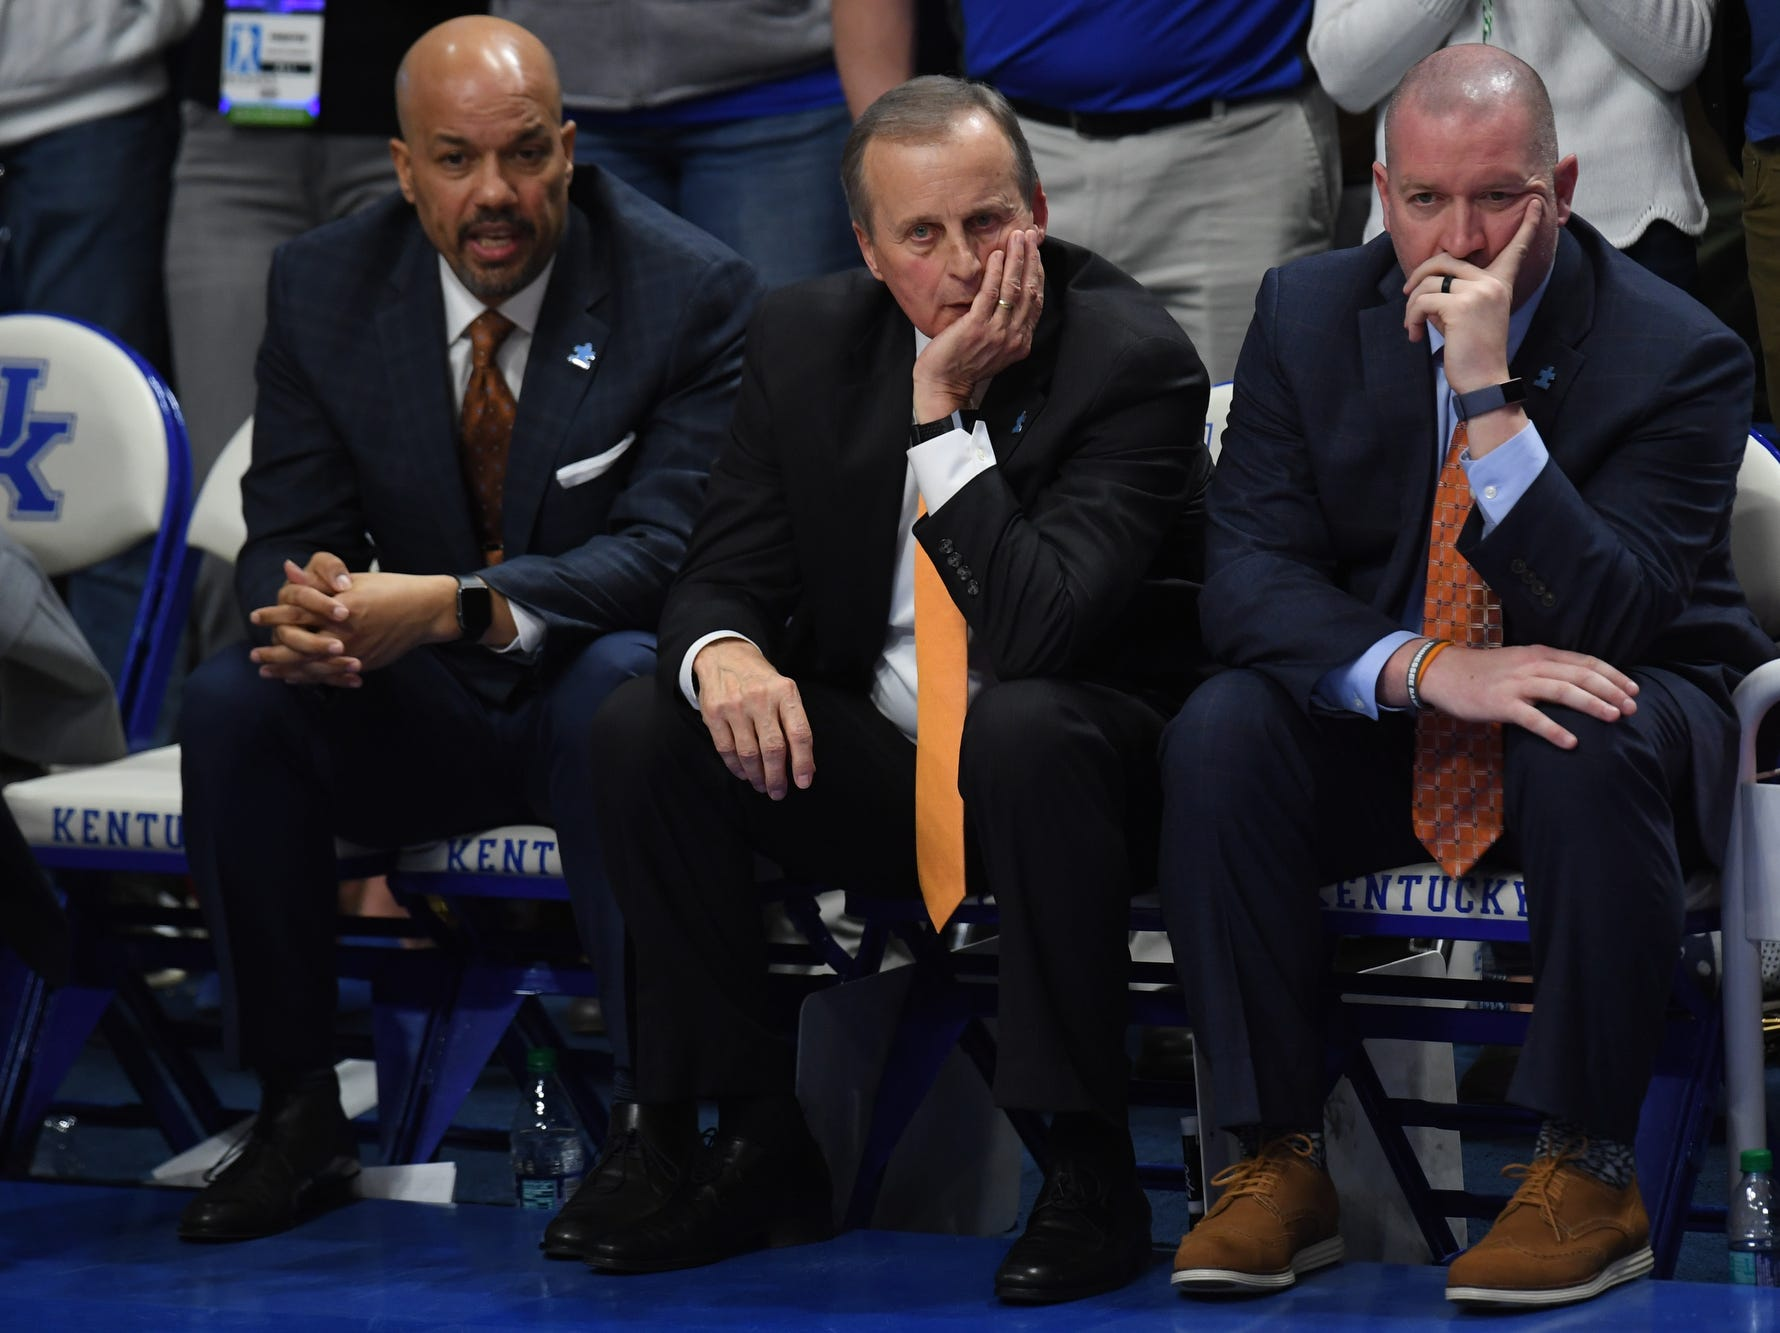 UT coaches during the University of Kentucky mens basketball game against Tennessee at Rupp Arena in Lexington, Kentucky on Saturday, February 16, 2019.